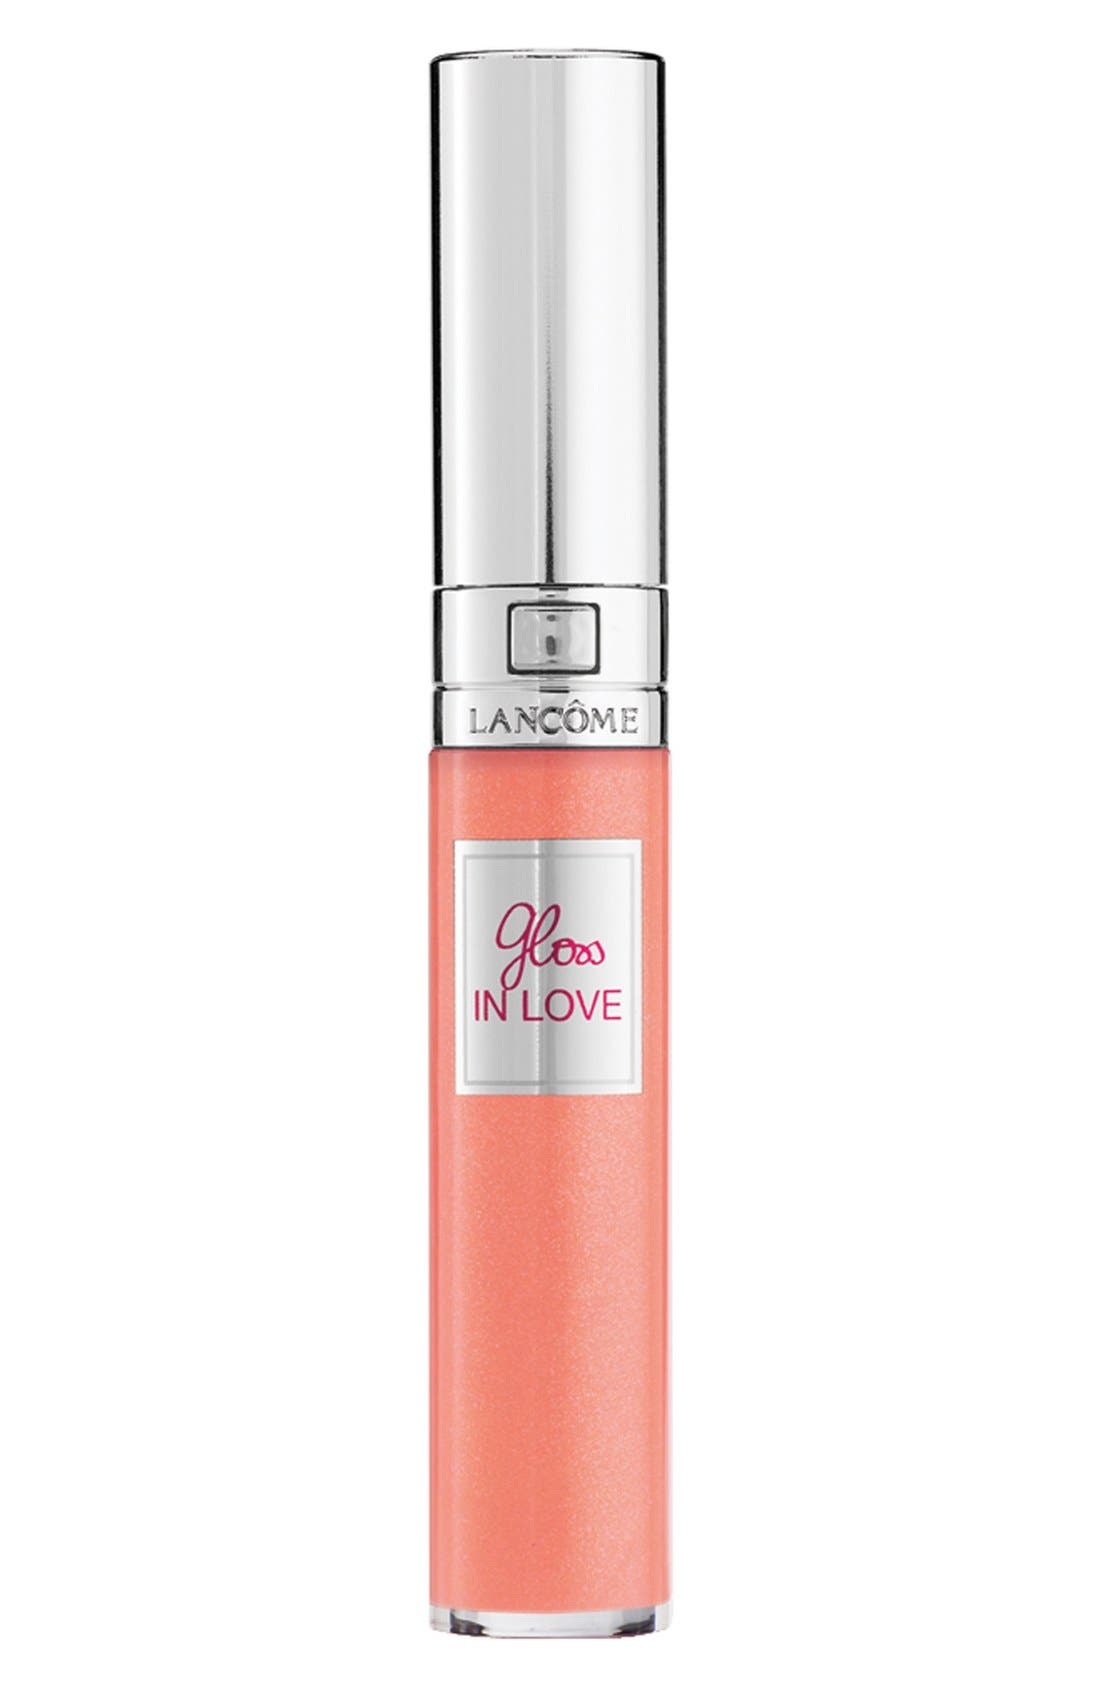 Gloss In Love Moisturizing Lip Gloss,                         Main,                         color, 800